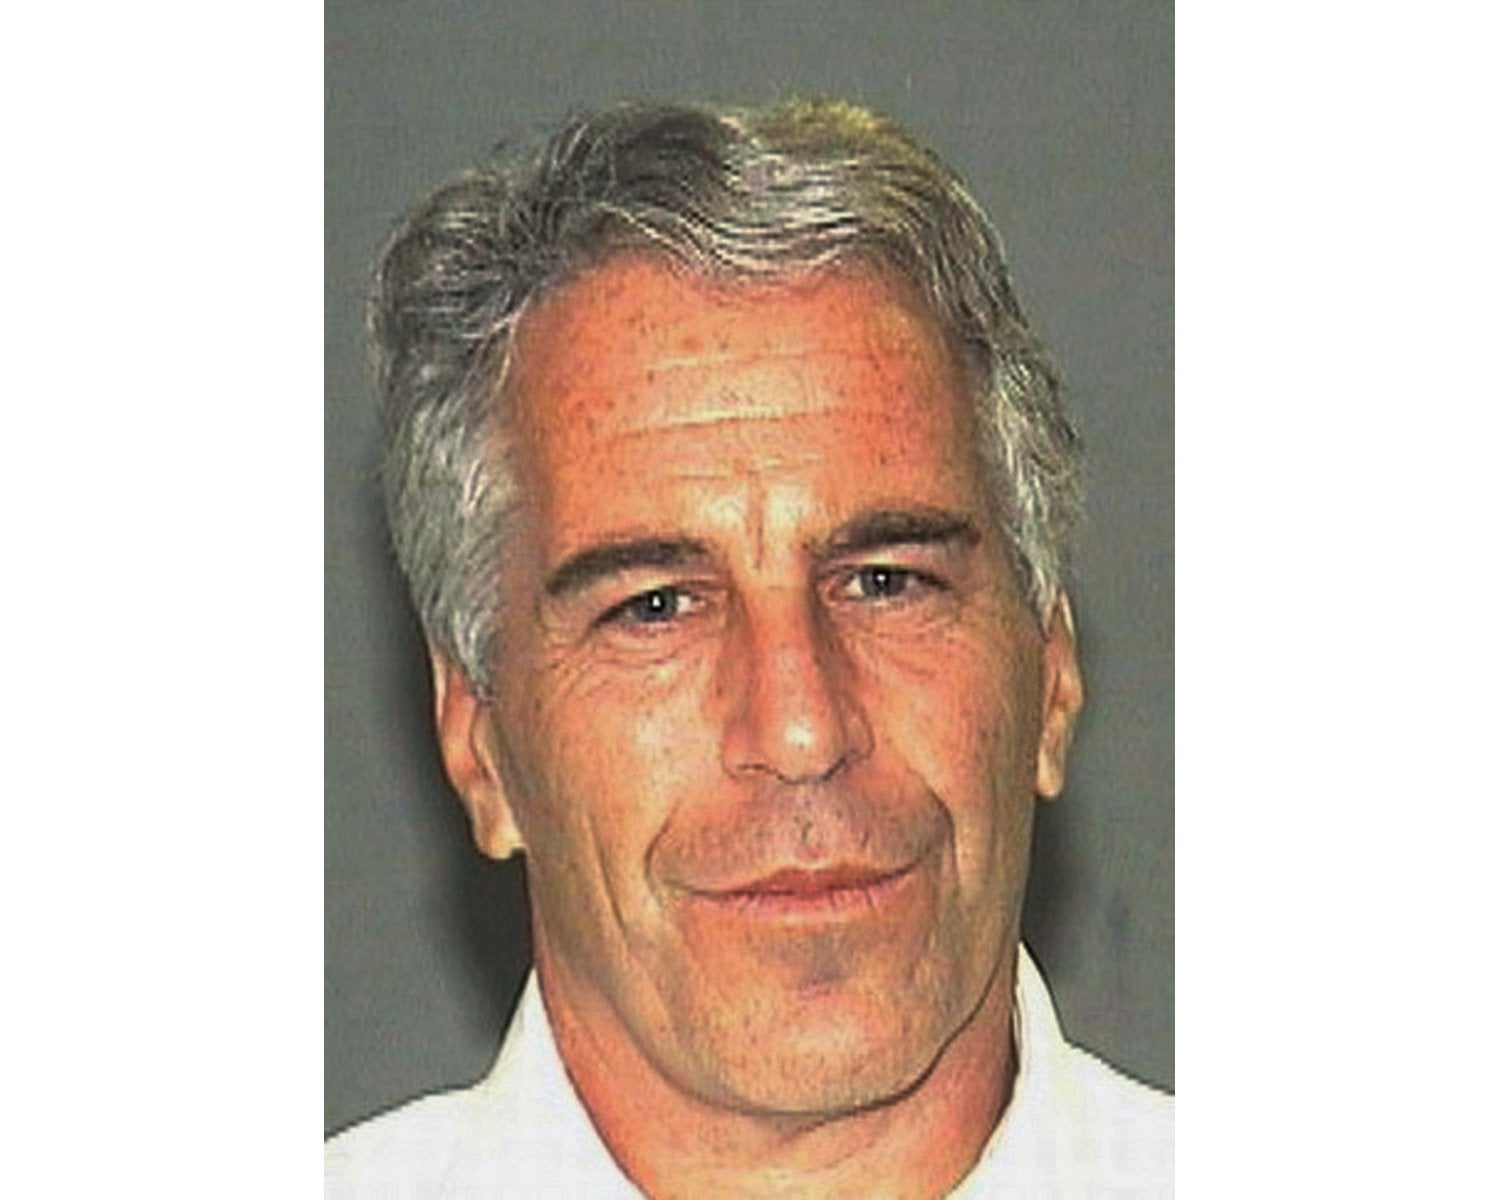 A file photo of Epstein, close-up, lightly smiling